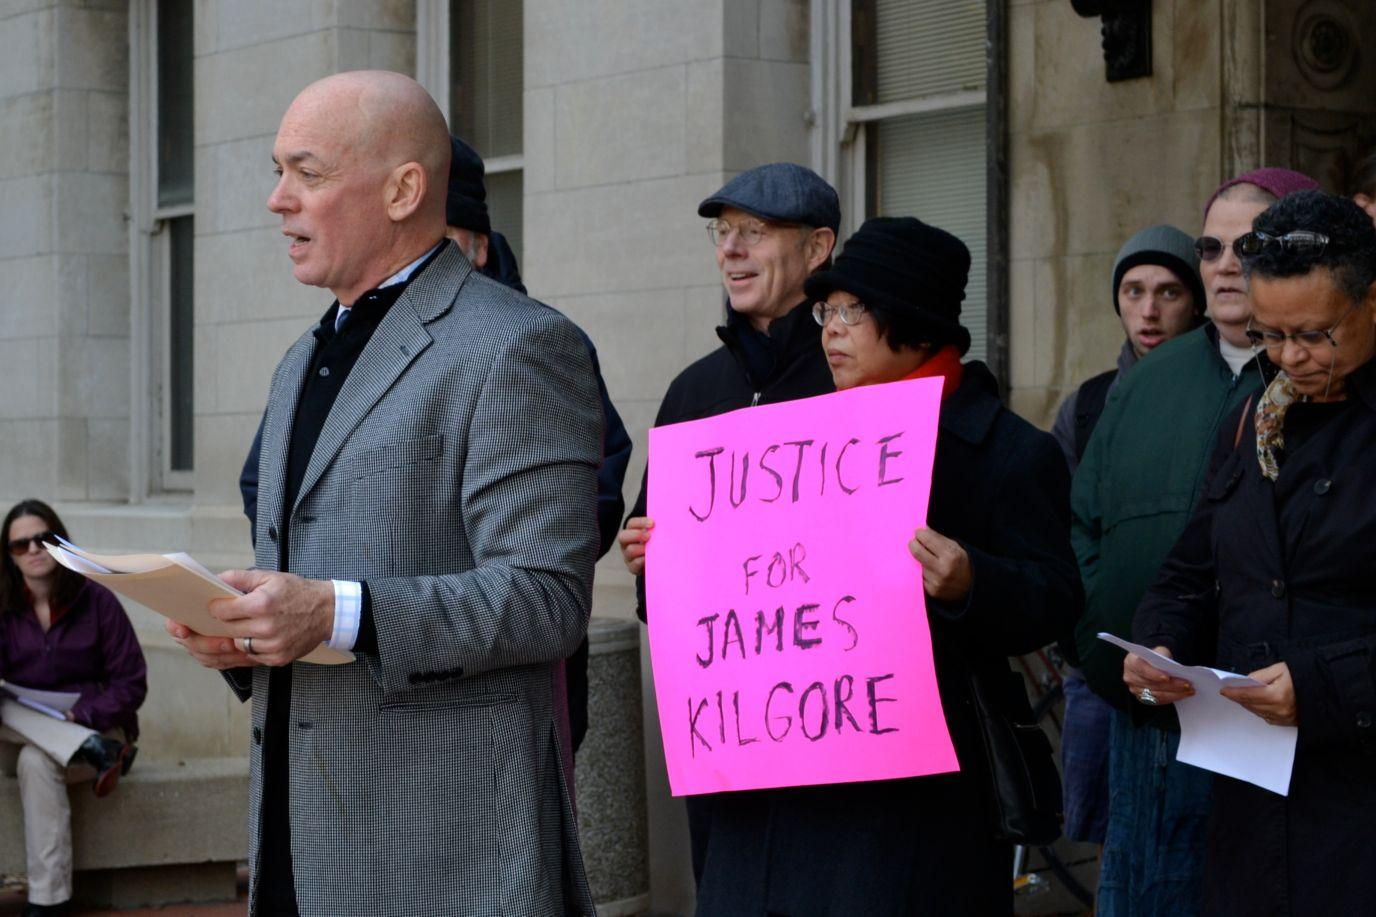 Dr. William Sullivan of the Department of Landscape Architecture gathers with fellow supporters of James Kilgore to speak with reporters outside the Henry Administration Building on Monday morning.